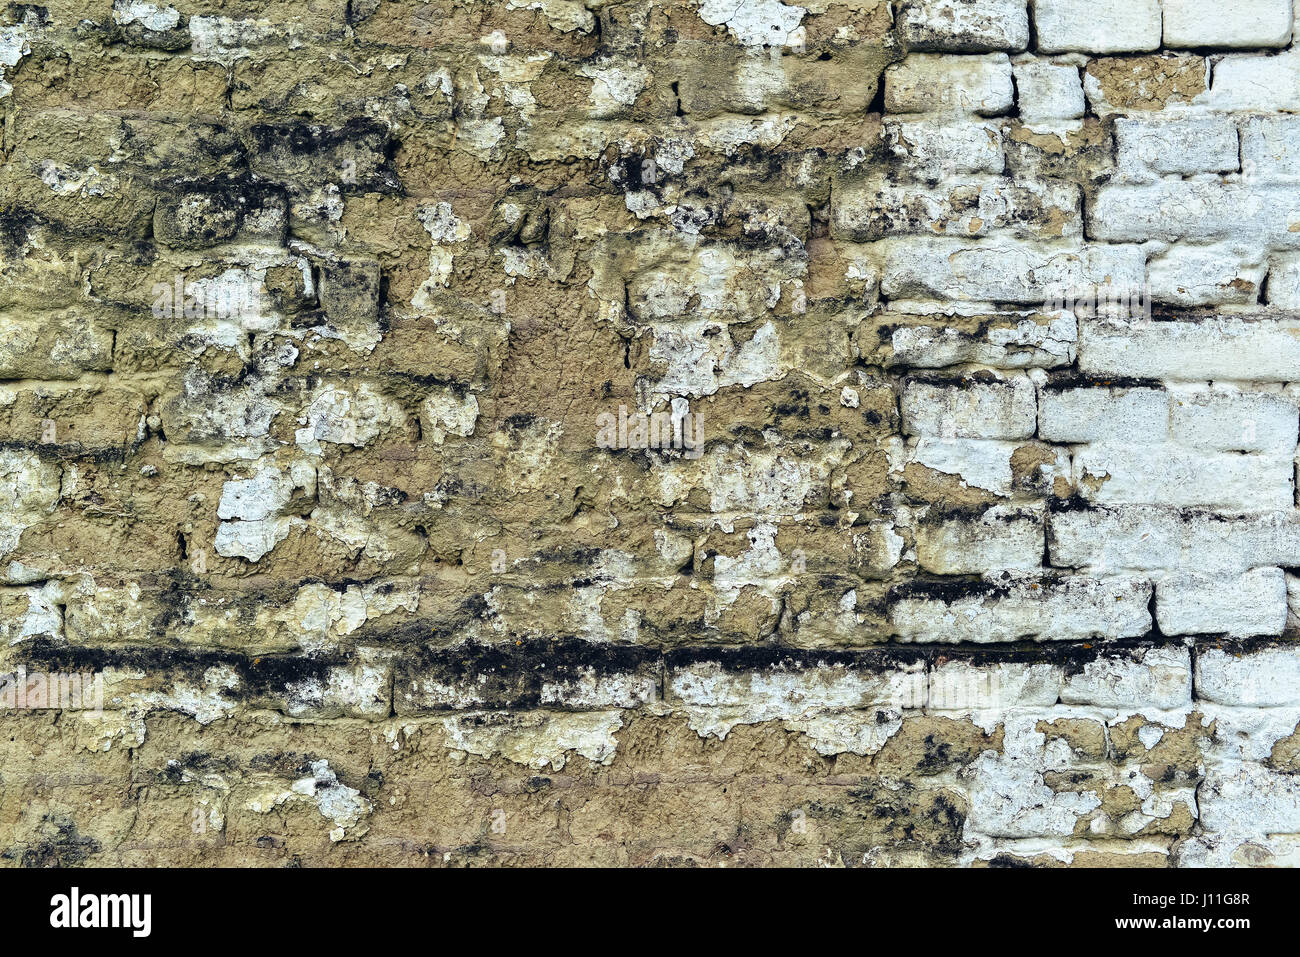 Old weathered mudbrick wall texture, mud-brick construction is often adobe - Stock Image